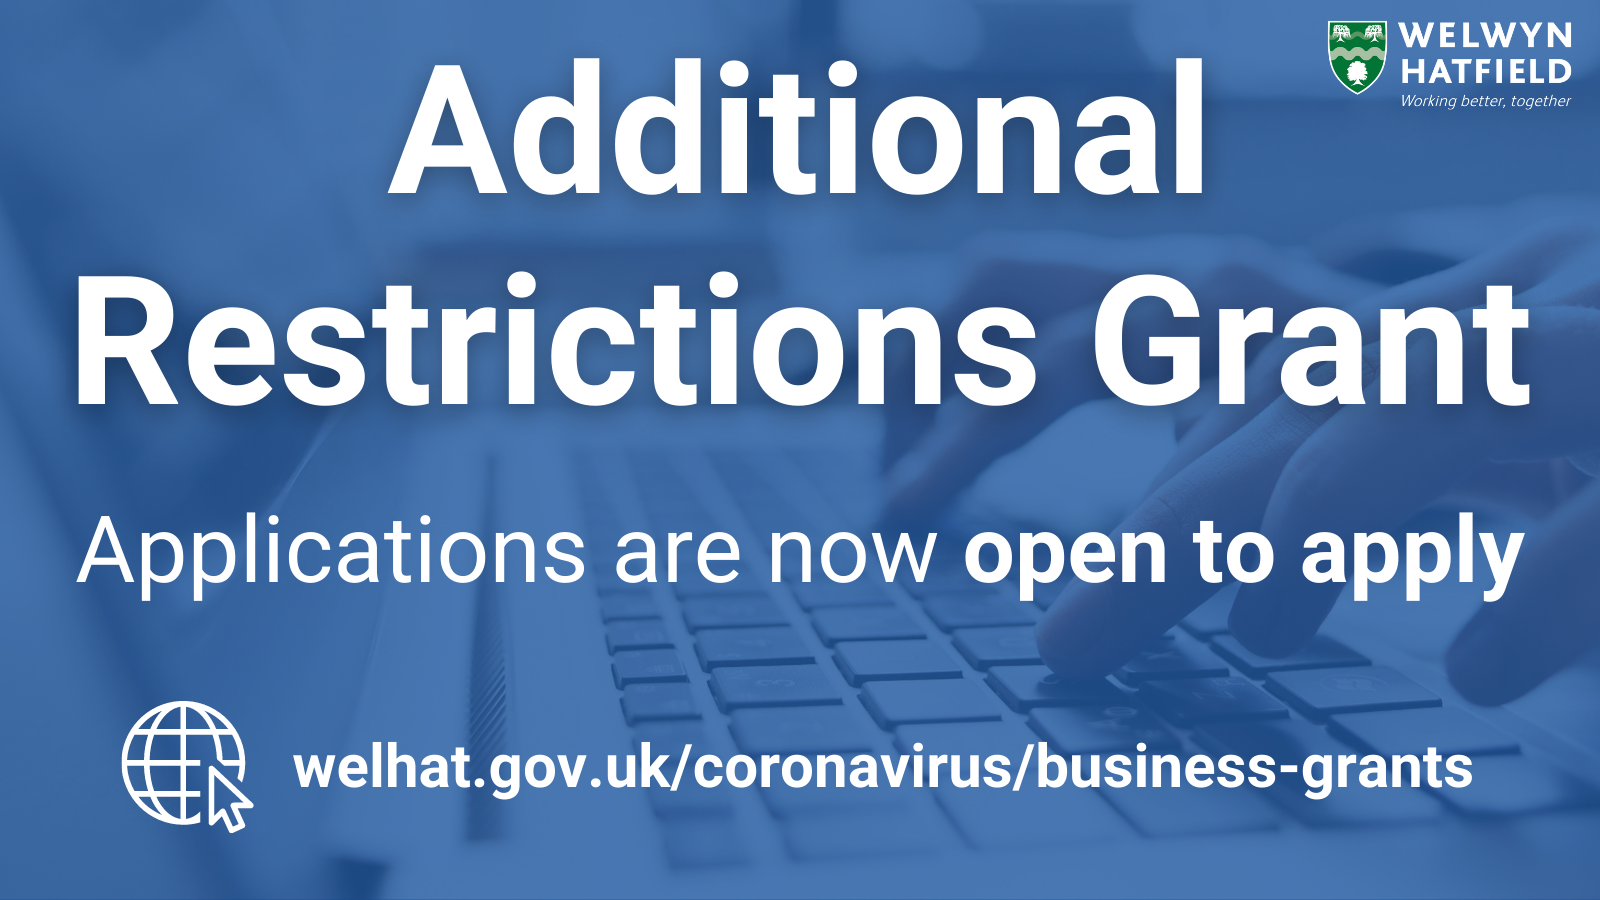 Additional Restrictions Grant scheme reopens